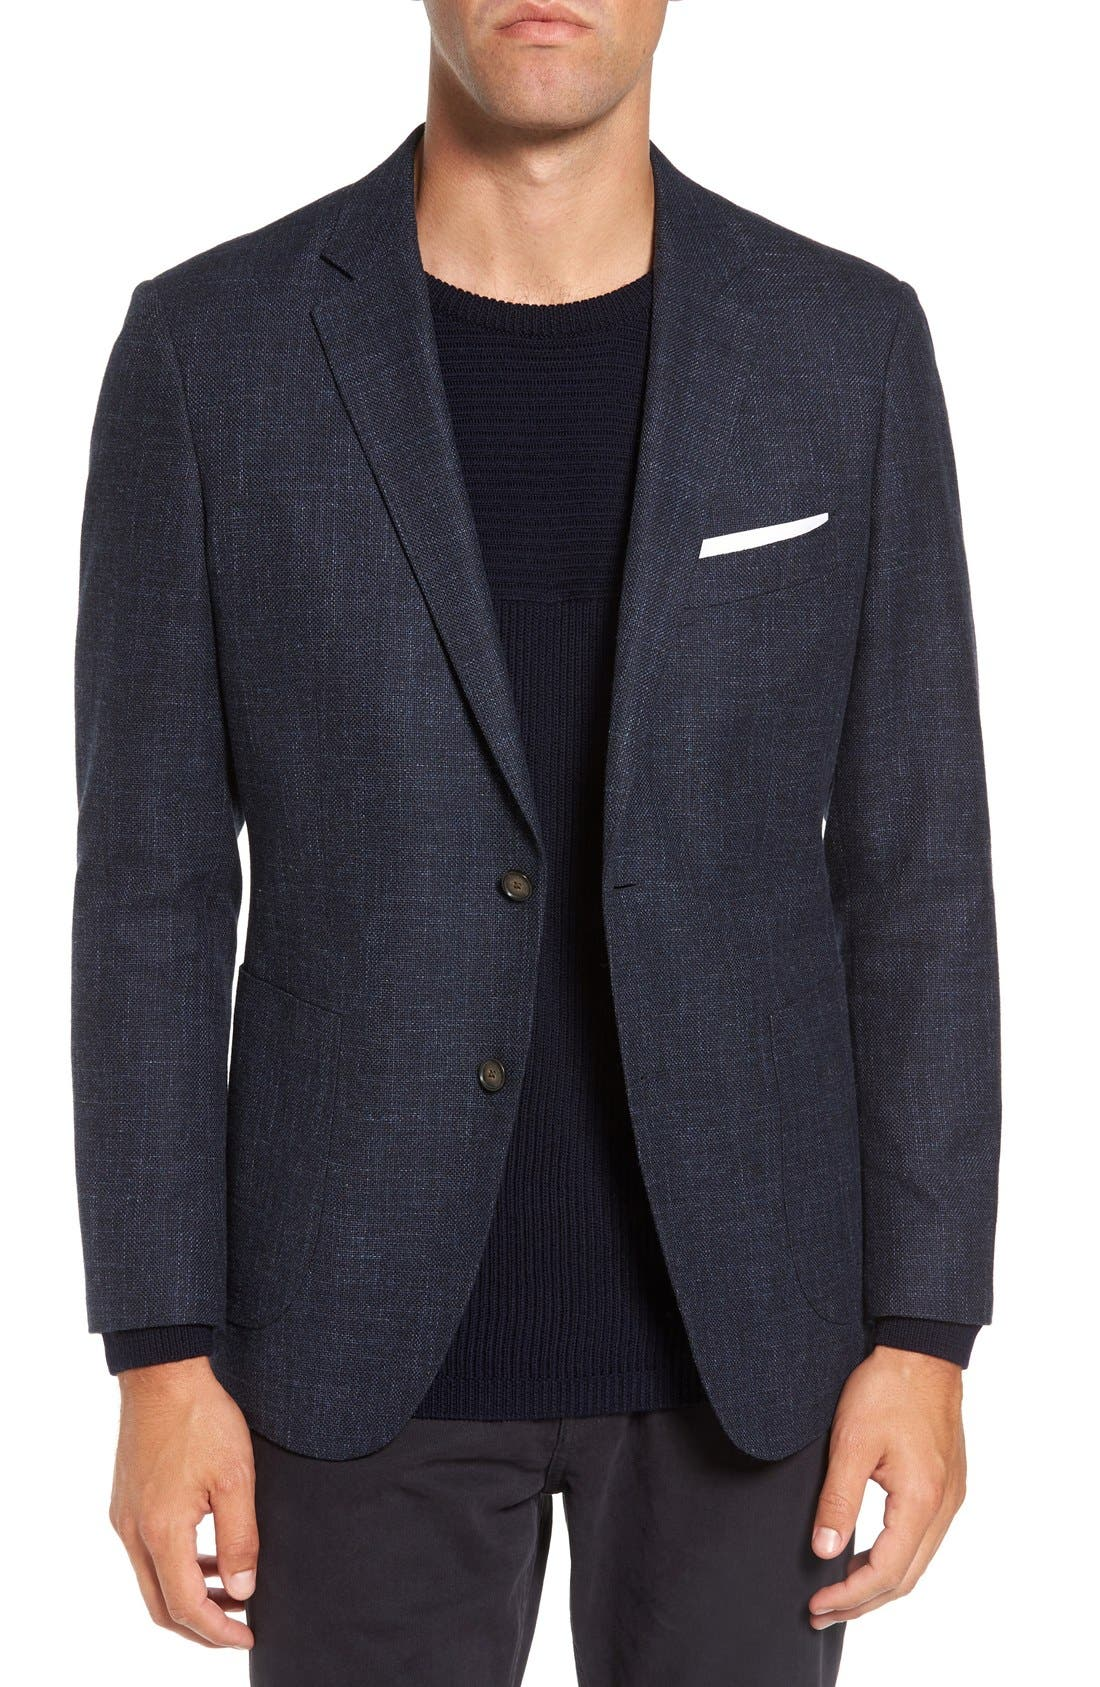 Alternate Image 1 Selected - Rodd & Gunn 'Heaton' Sports Fit Cotton & Wool Sport Coat